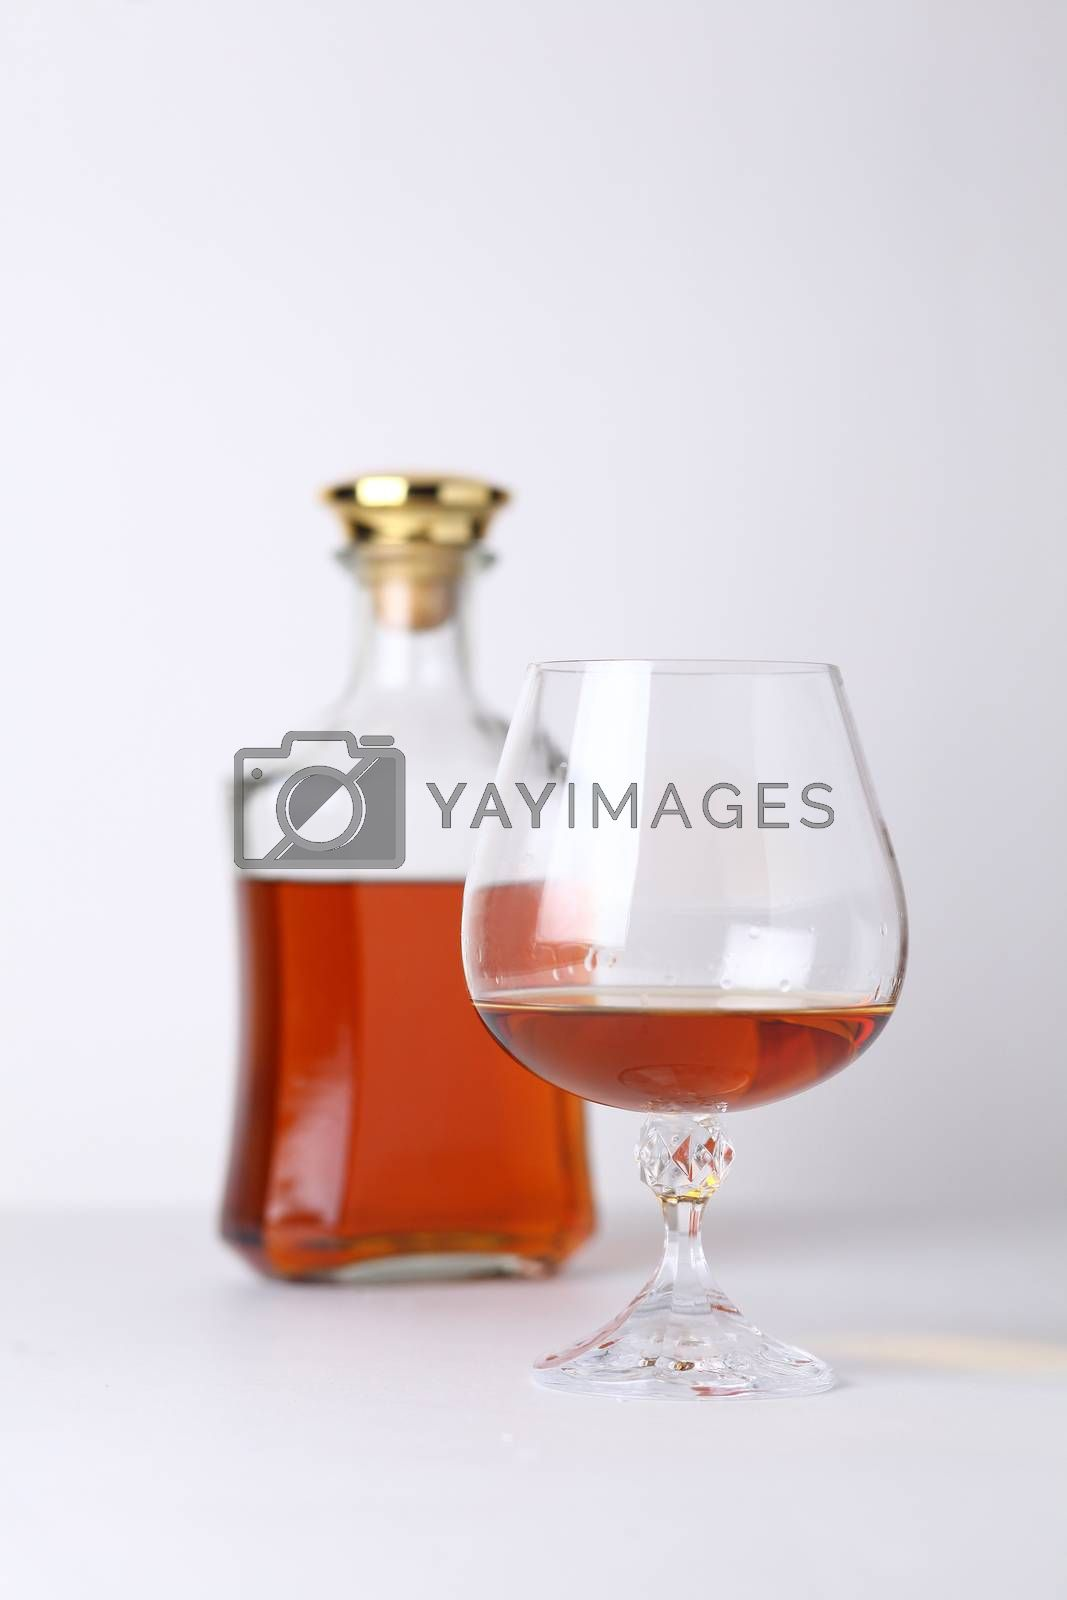 Royalty free image of Glass of brandy by hiddenhallow